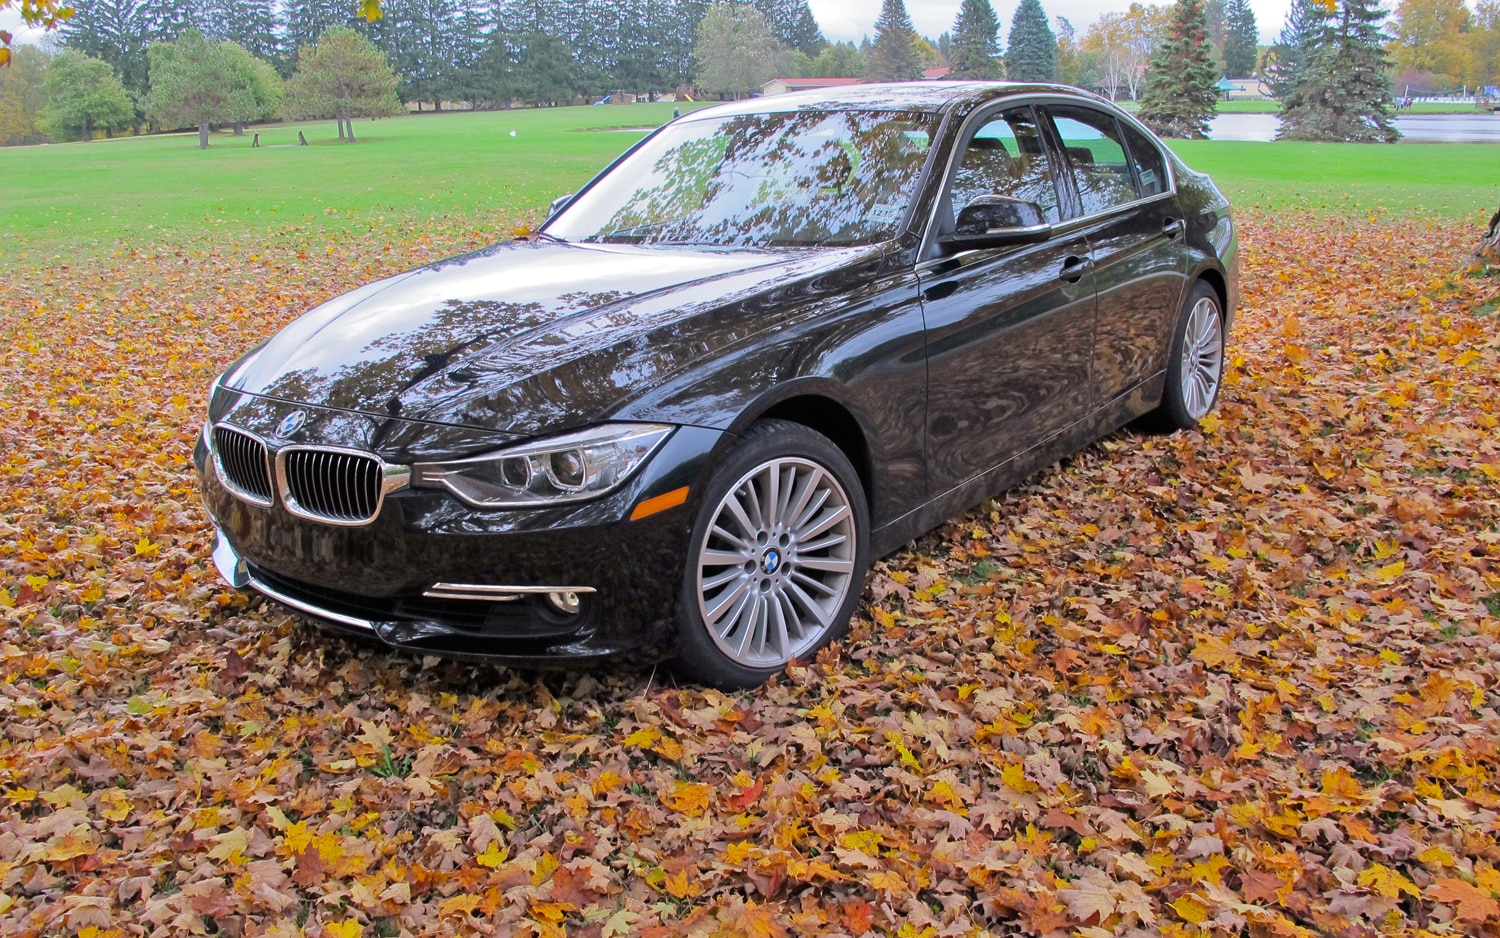 BMW Convertible bmw 328i manual pdf 2012 BMW 328i - Four Seasons Update - September 2012 - Automobile ...